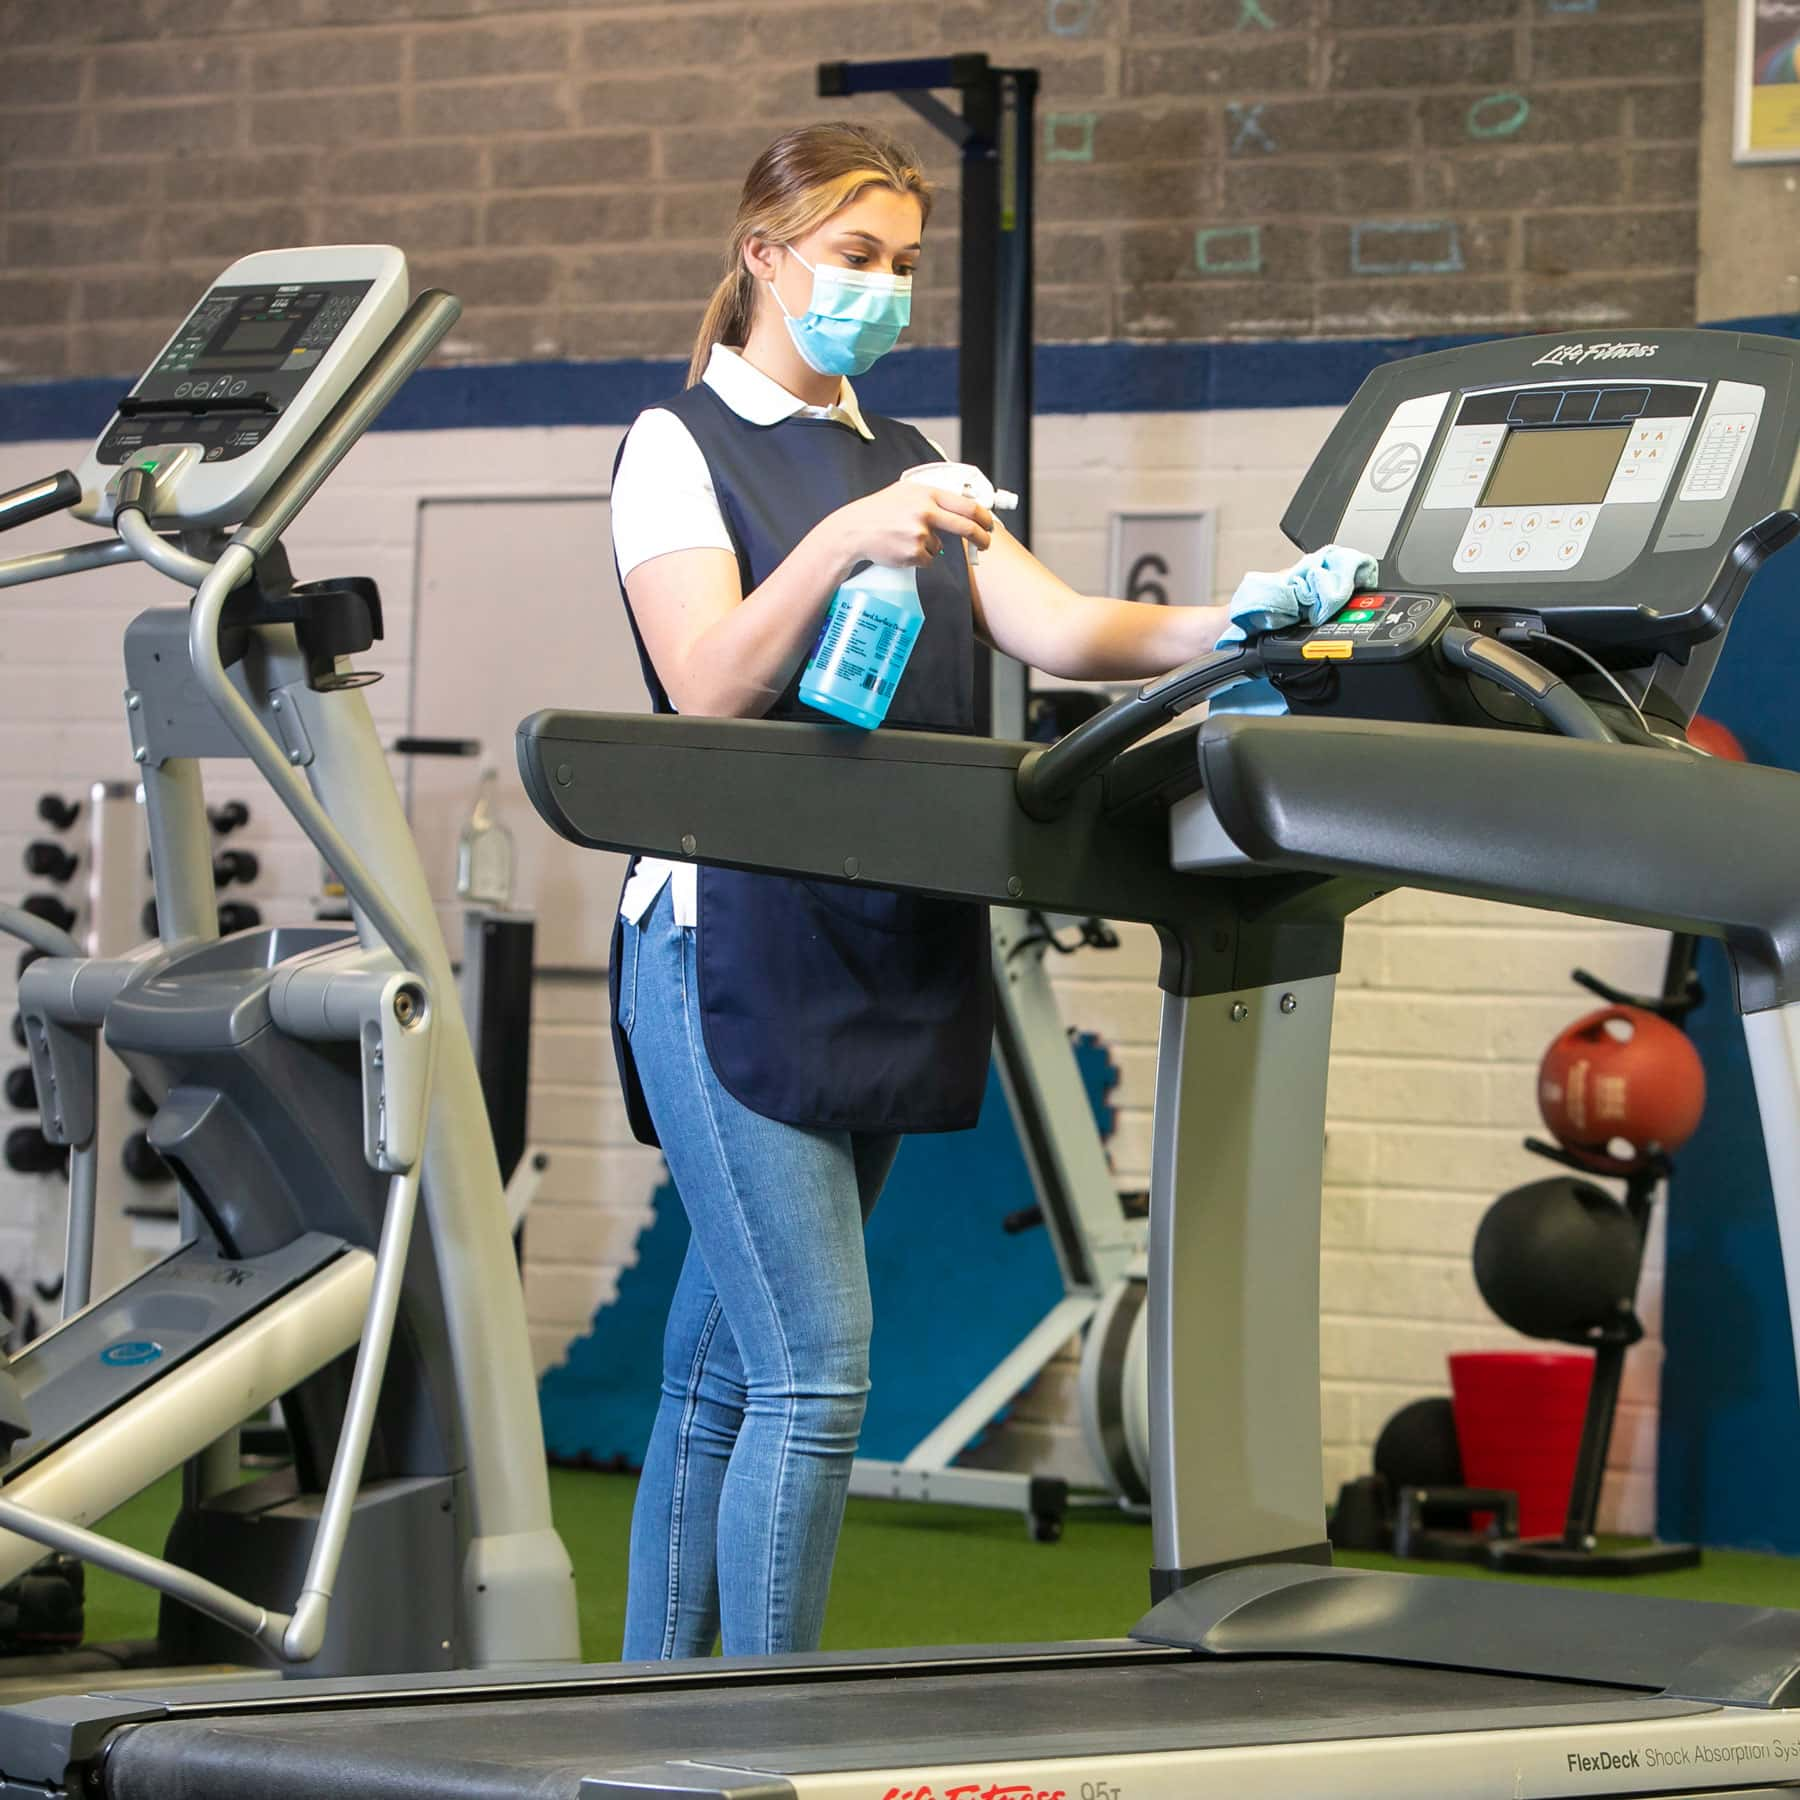 Covid proof your gym with effective cleaning